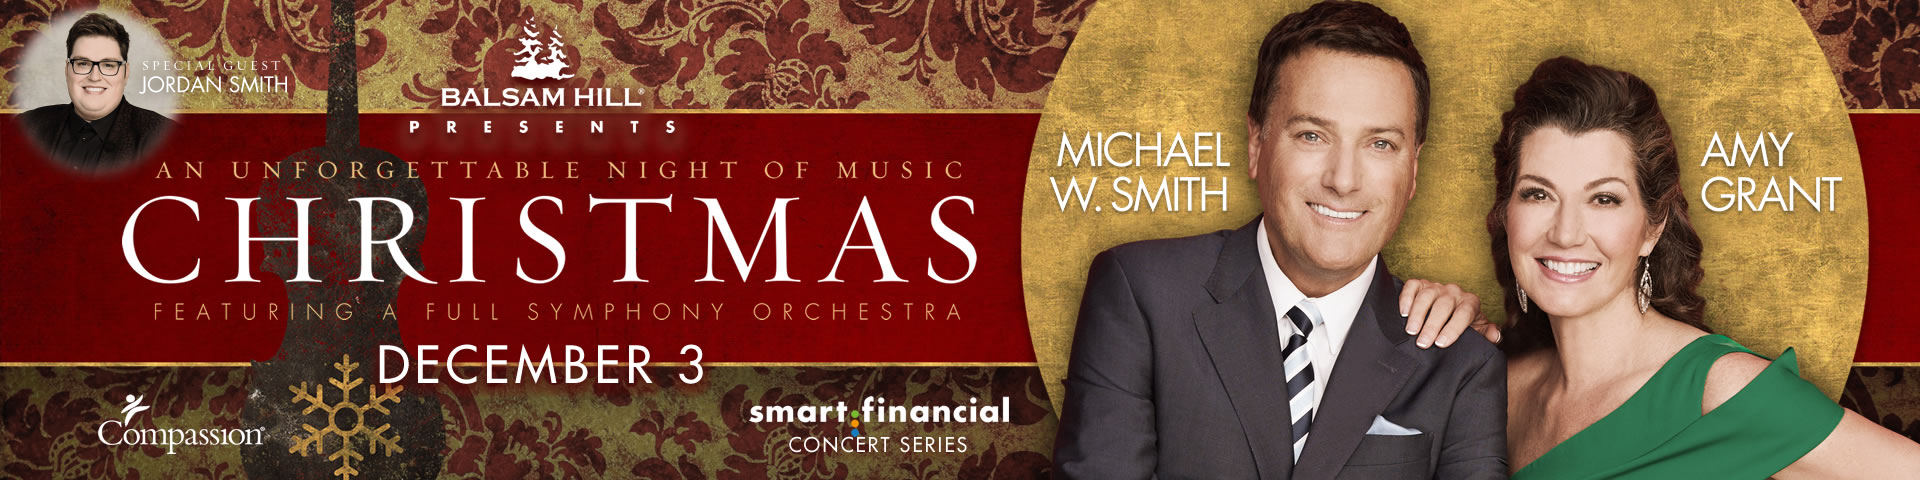 Amy Grant and Michael W. Smith: An Unforgettable Night of Christmas ...